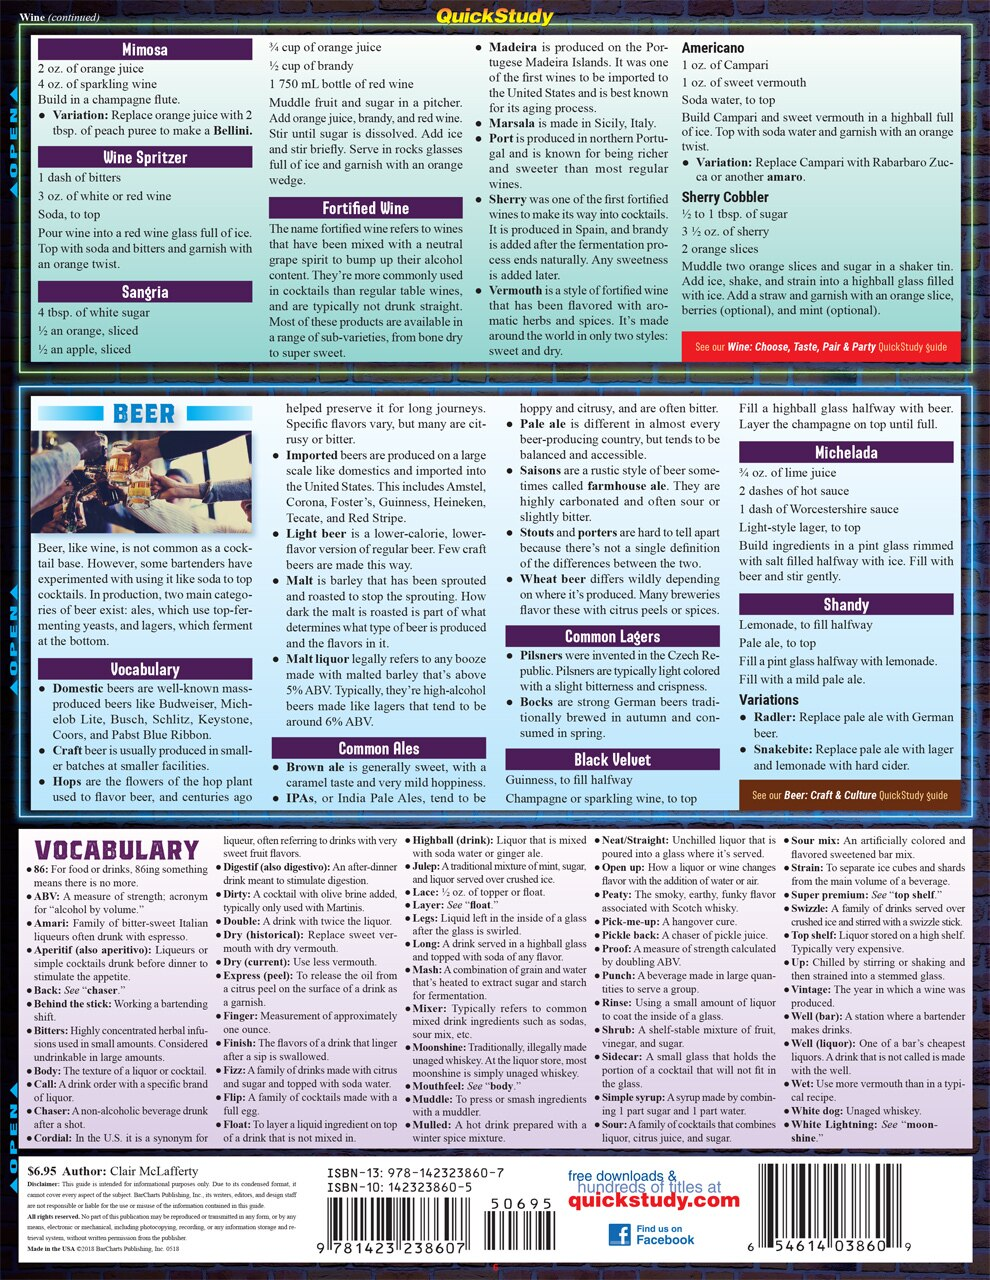 Quick Study QuickStudy Bar Guide: A Mixology Laminated Reference Guide BarCharts Publishing Lifestyle Reference Back Image